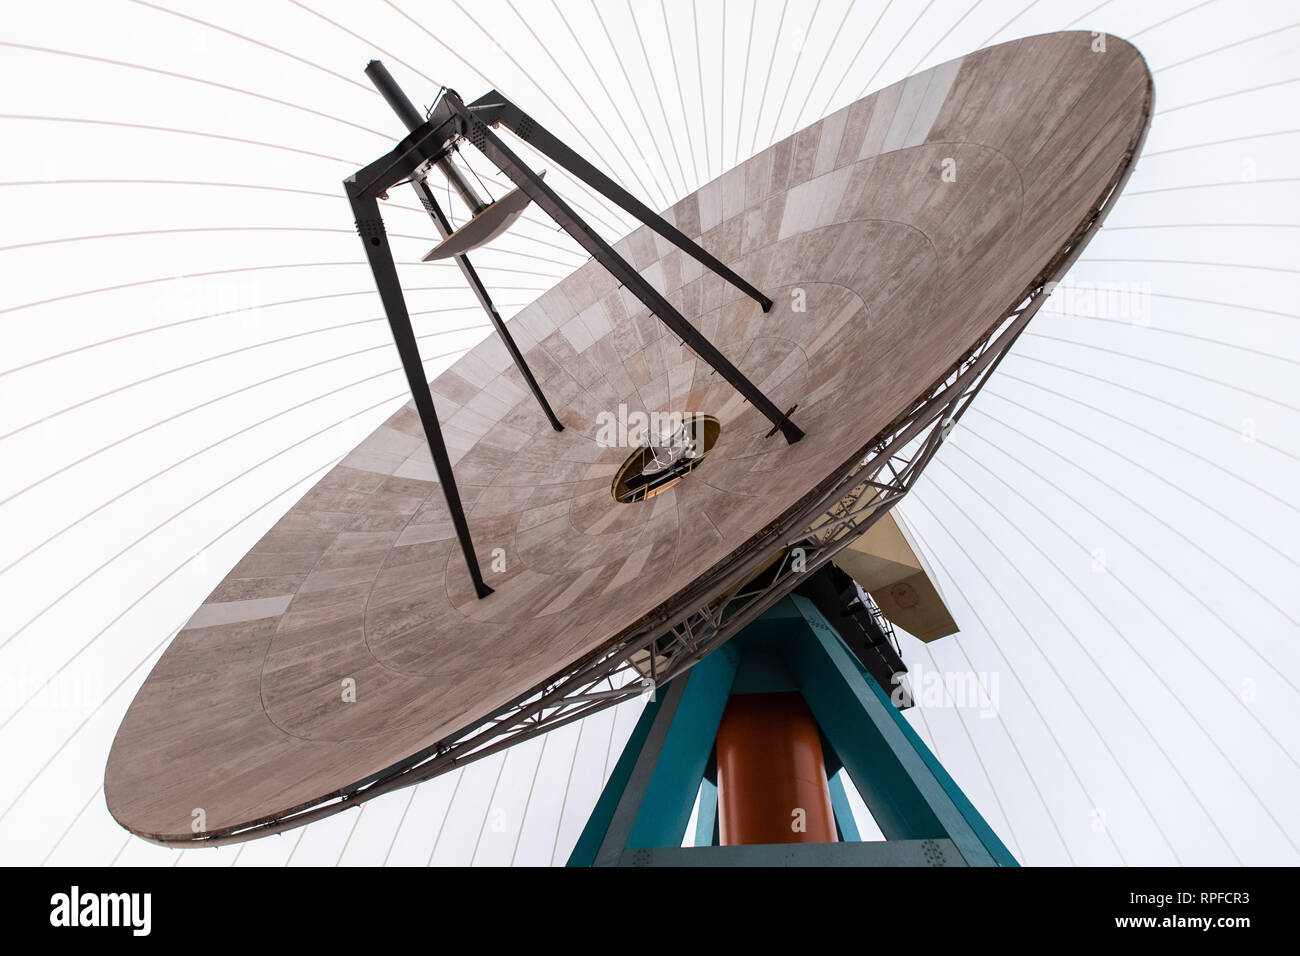 Bochum, Germany. 19th Feb, 2019. There's a parabolic antenna in the radar dome. With the commissioning of a travelling satellite, the observatory in Bochum celebrates a milestone in amateur radio. Qatar OSCAR-100, or QO-100 for short, is said to be the world's first satellite to use the non-commercial amateur radio service that rotates with the Earth instead of orbiting it. (to dpa: 'Sparking like an astronaut: first travelling satellite for amateurs') Credit: Marcel Kusch/dpa/Alamy Live News - Stock Image